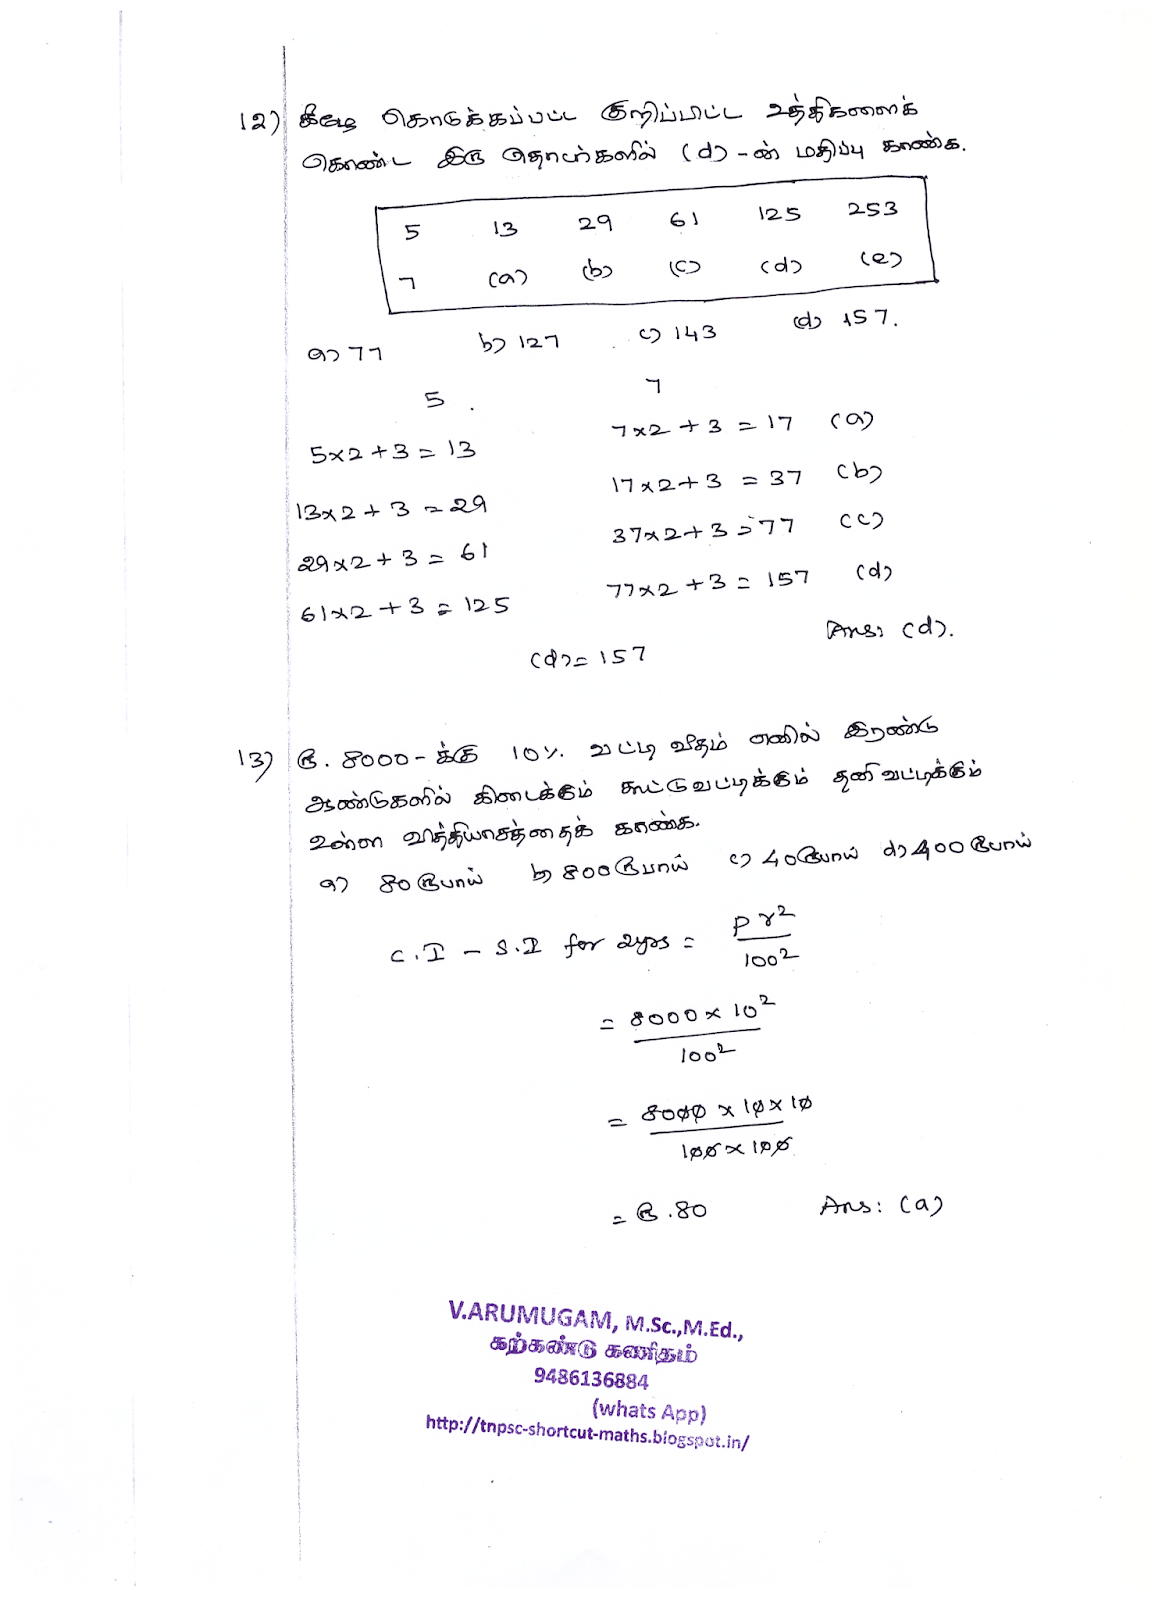 TNPSC – 2019 - Inspector of Salt in the Department of Industries and Commerce in the Tamil Nadu Industries Subordinate Service, 2015-16 and Store Keeper in the Department of Forensic Sciences in Tamil Nadu Forensic Science Subordinate Service, 2013-14 EXAM - EXAM DATE: 24.03.2019